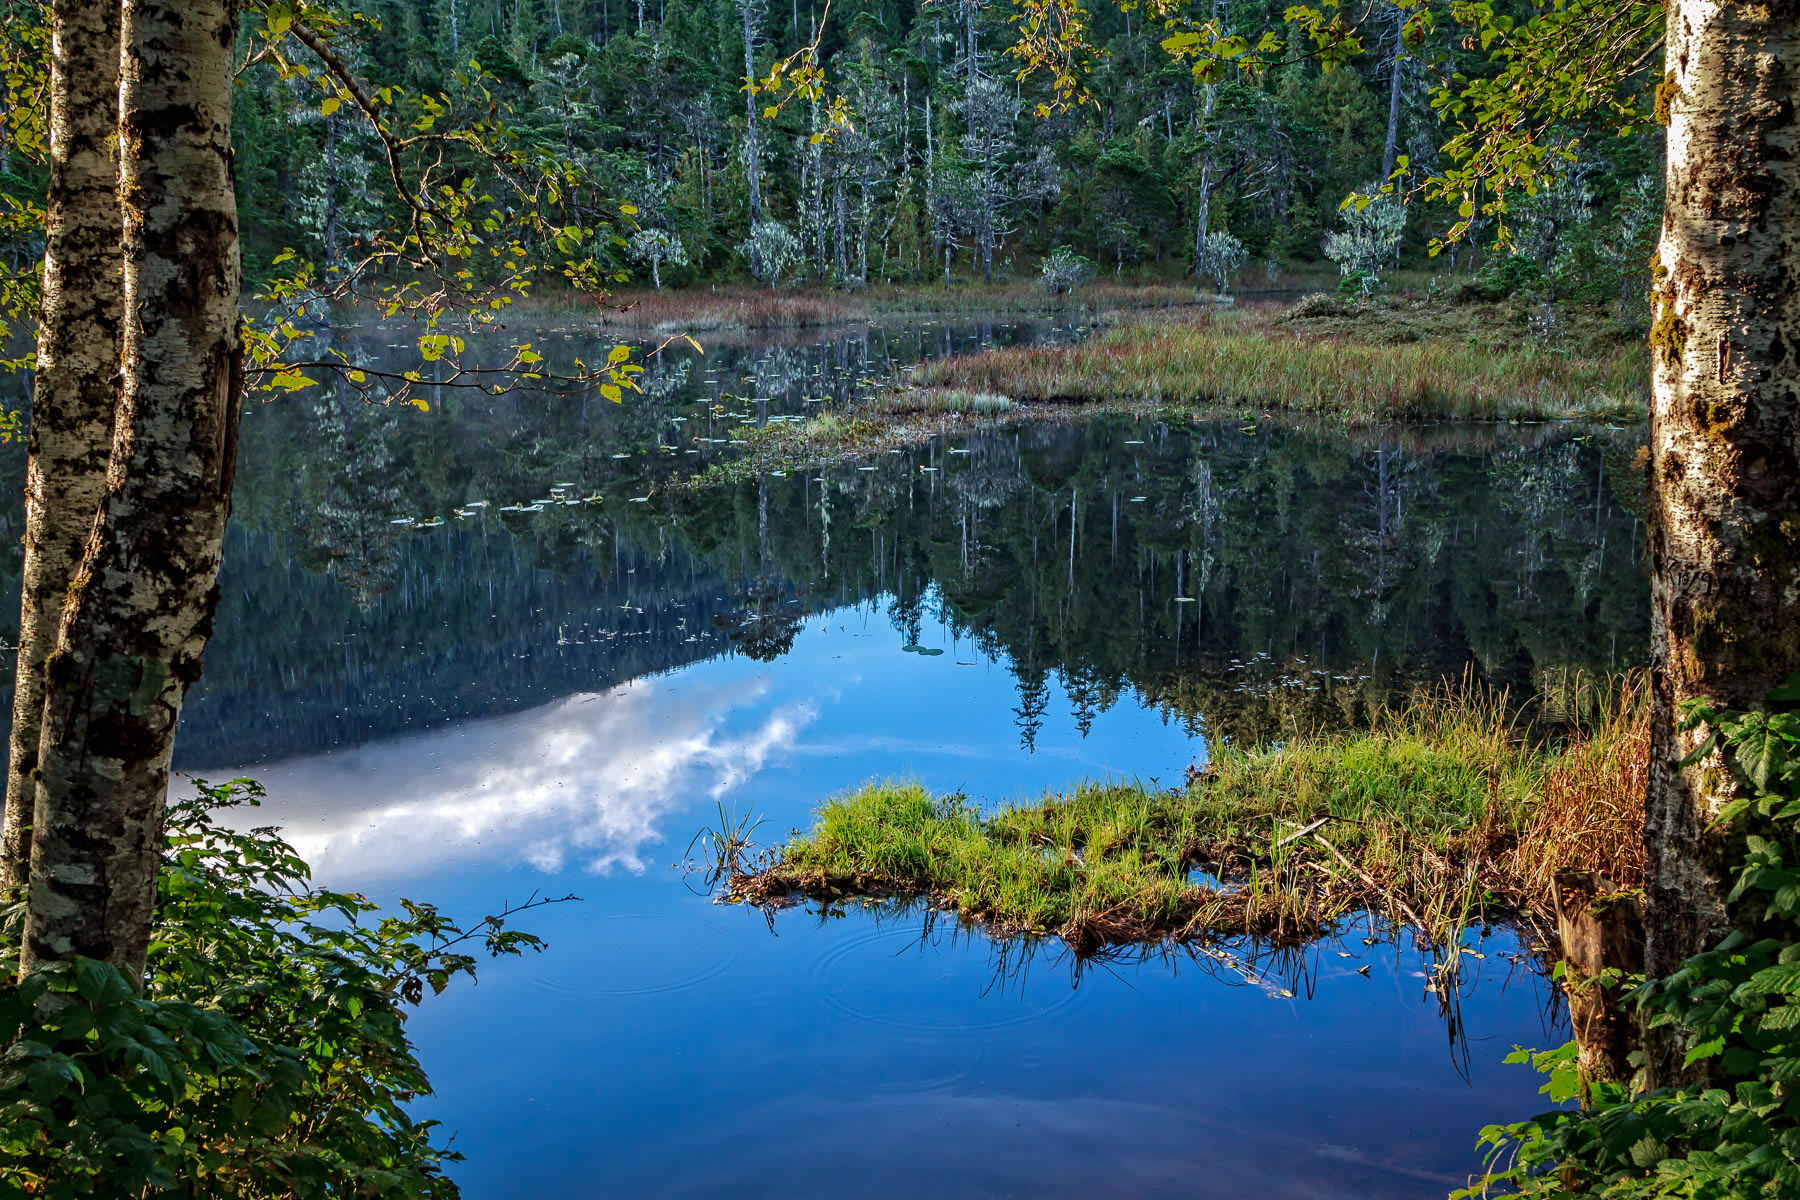 A small pond in the Tongass National Forest just outside of Ketchikan, Alaska.